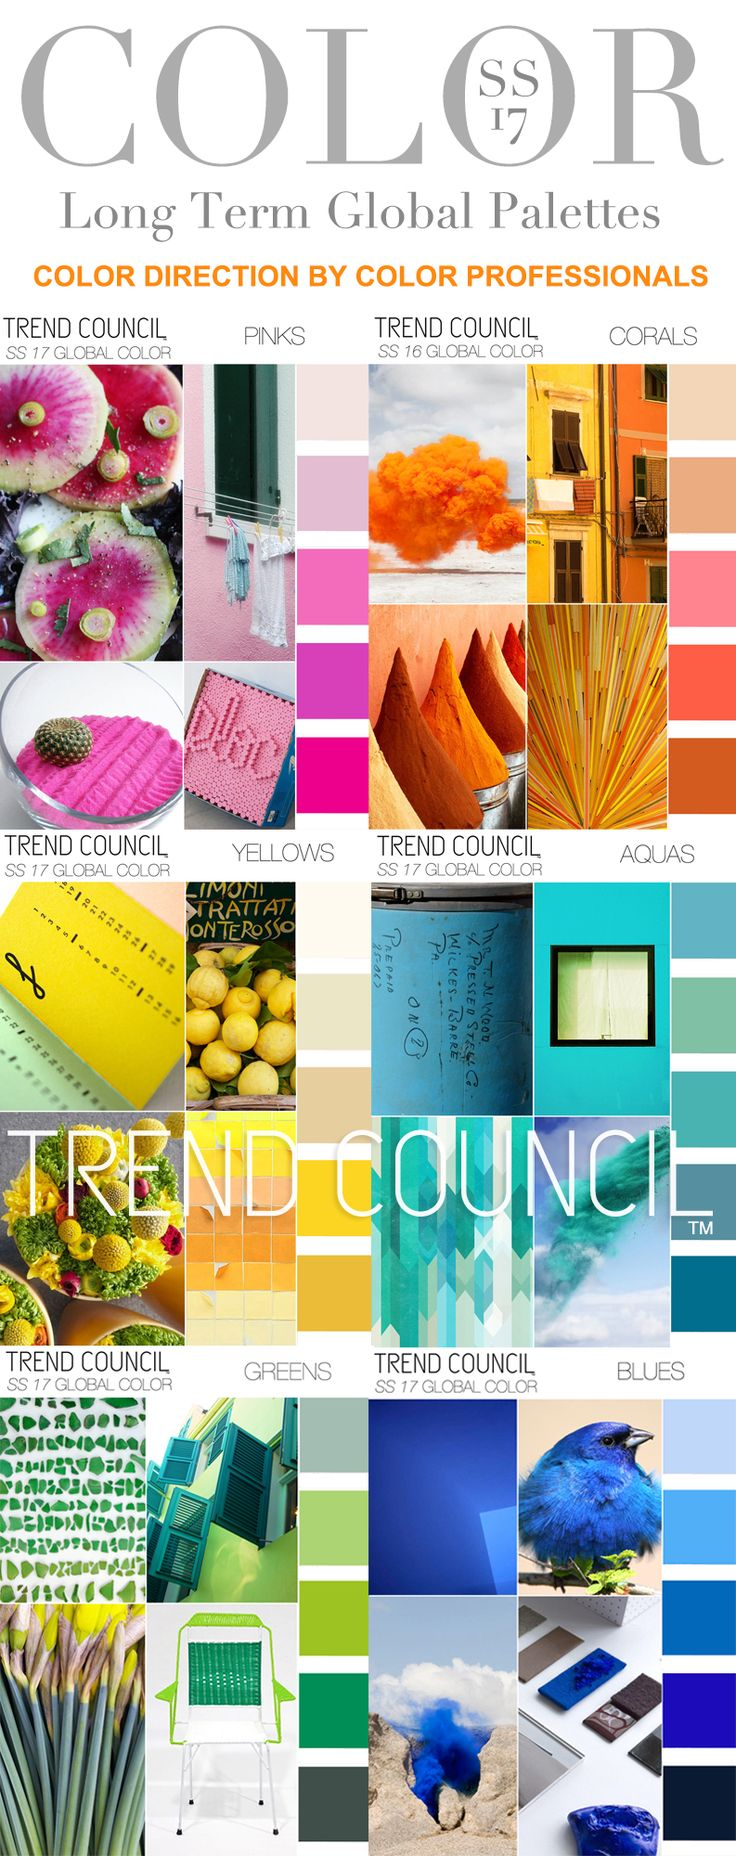 Popular color trends 2017 - Trend Council Updates